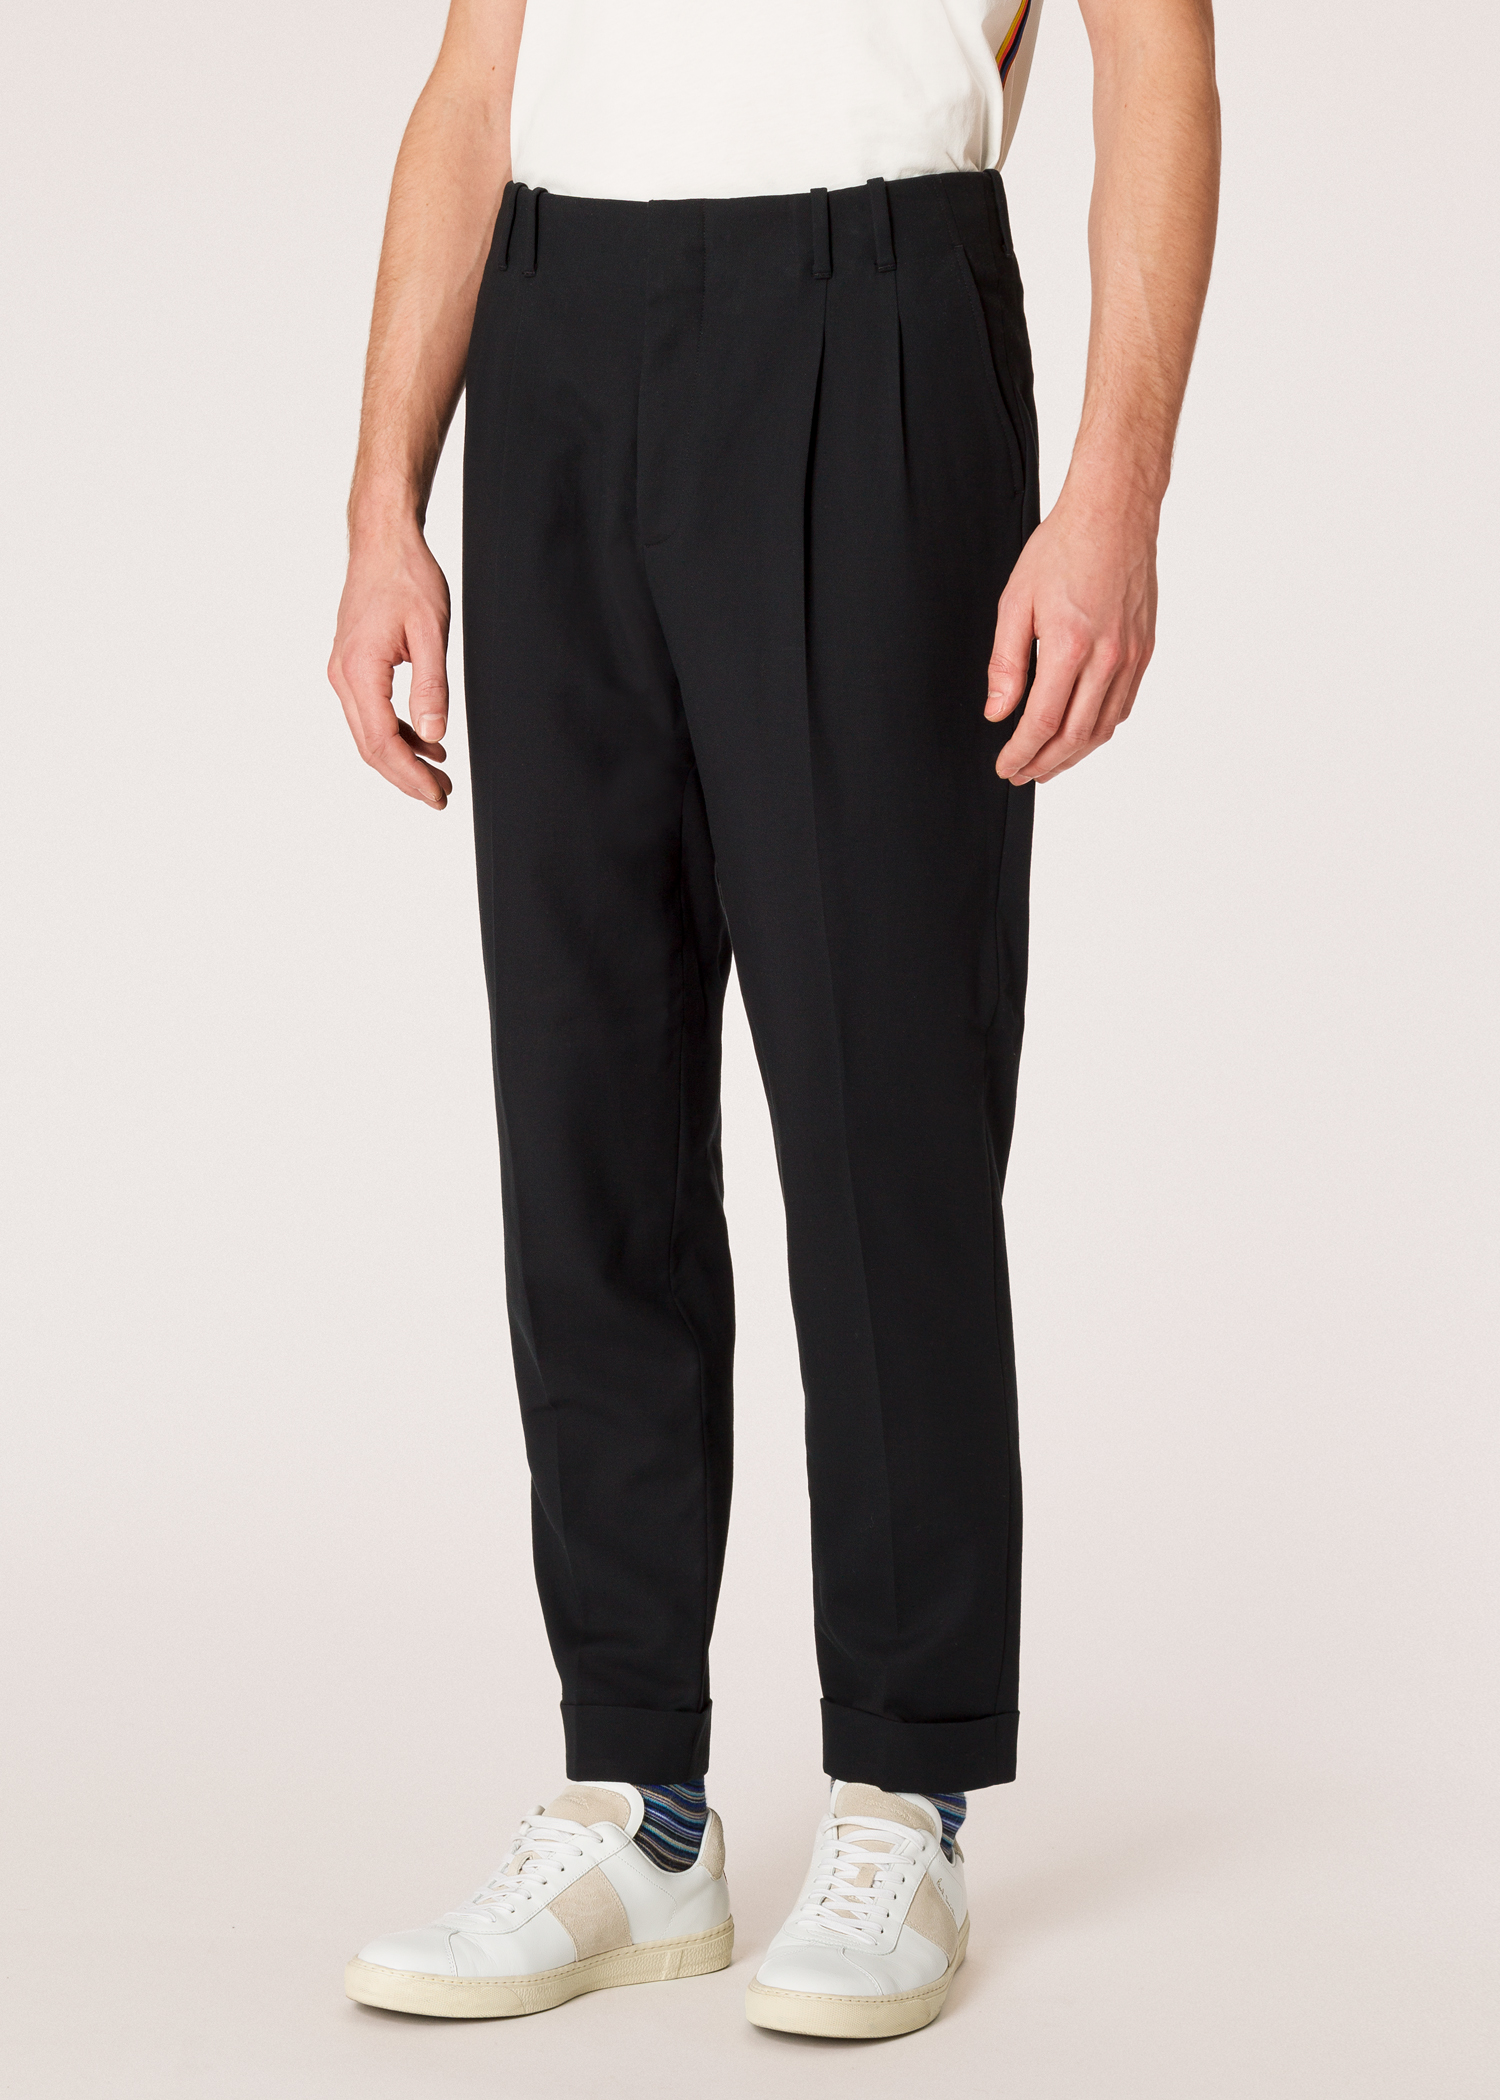 Pantalon Homme Noir Double Plis En Coton Coupe Fuseau - Paul Smith Francais aa066667a2e